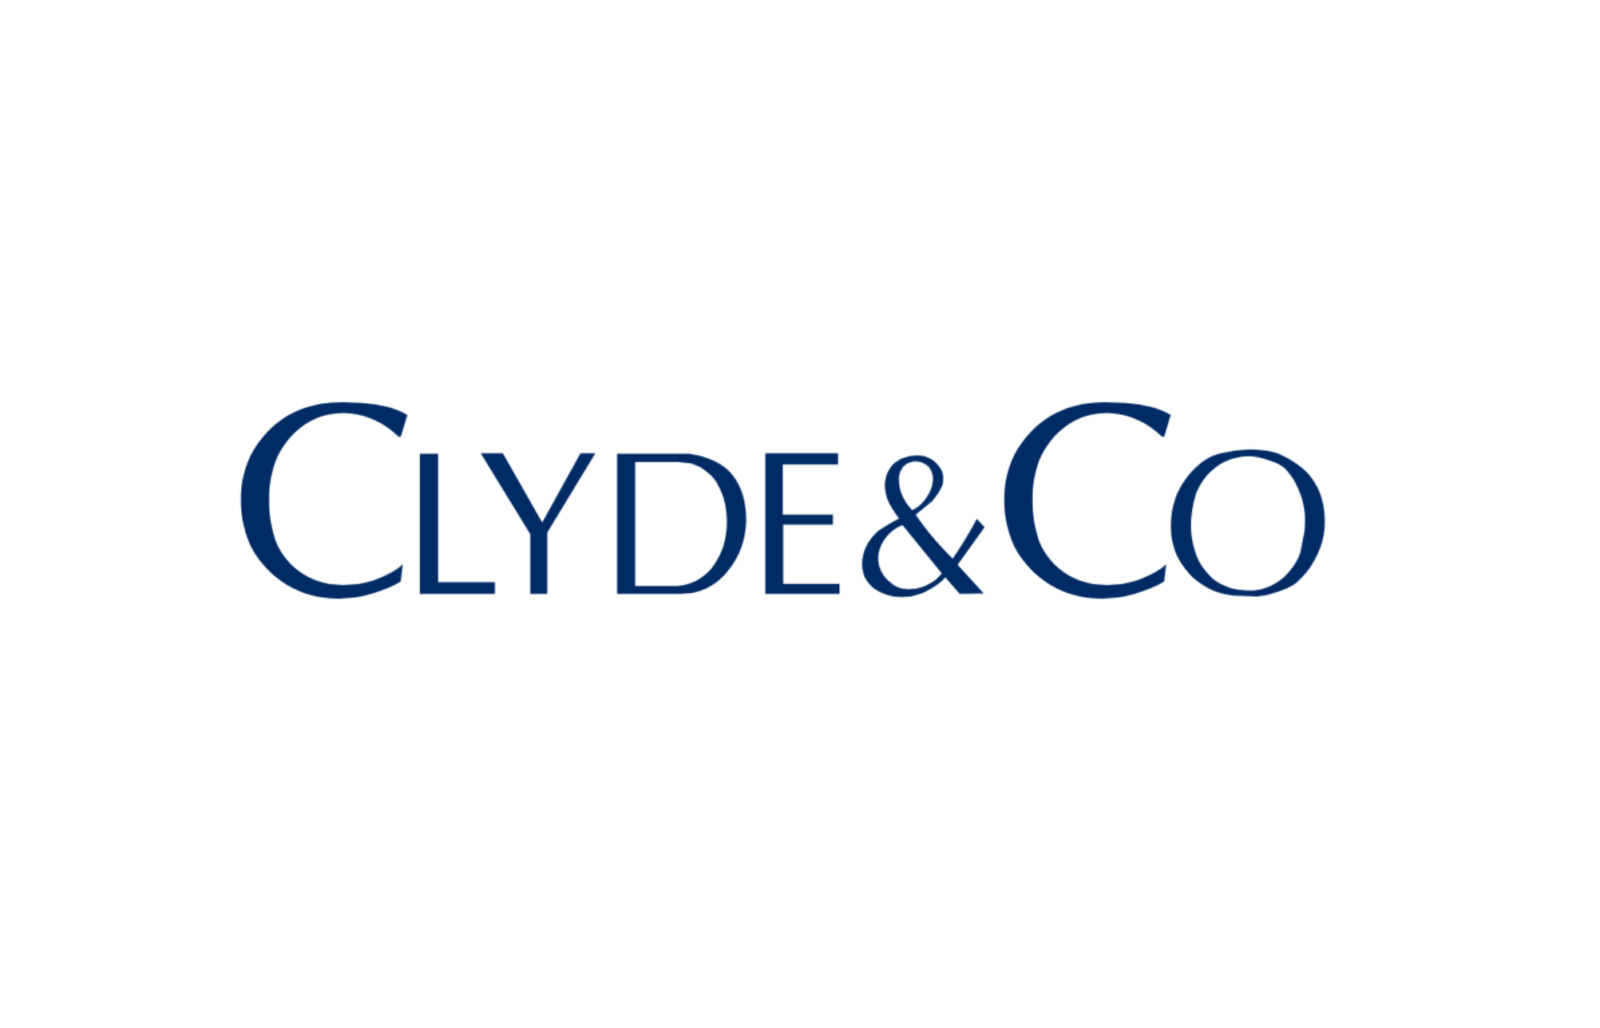 Clyde & Co Launches 'Parametric' Insurance Smart Contract